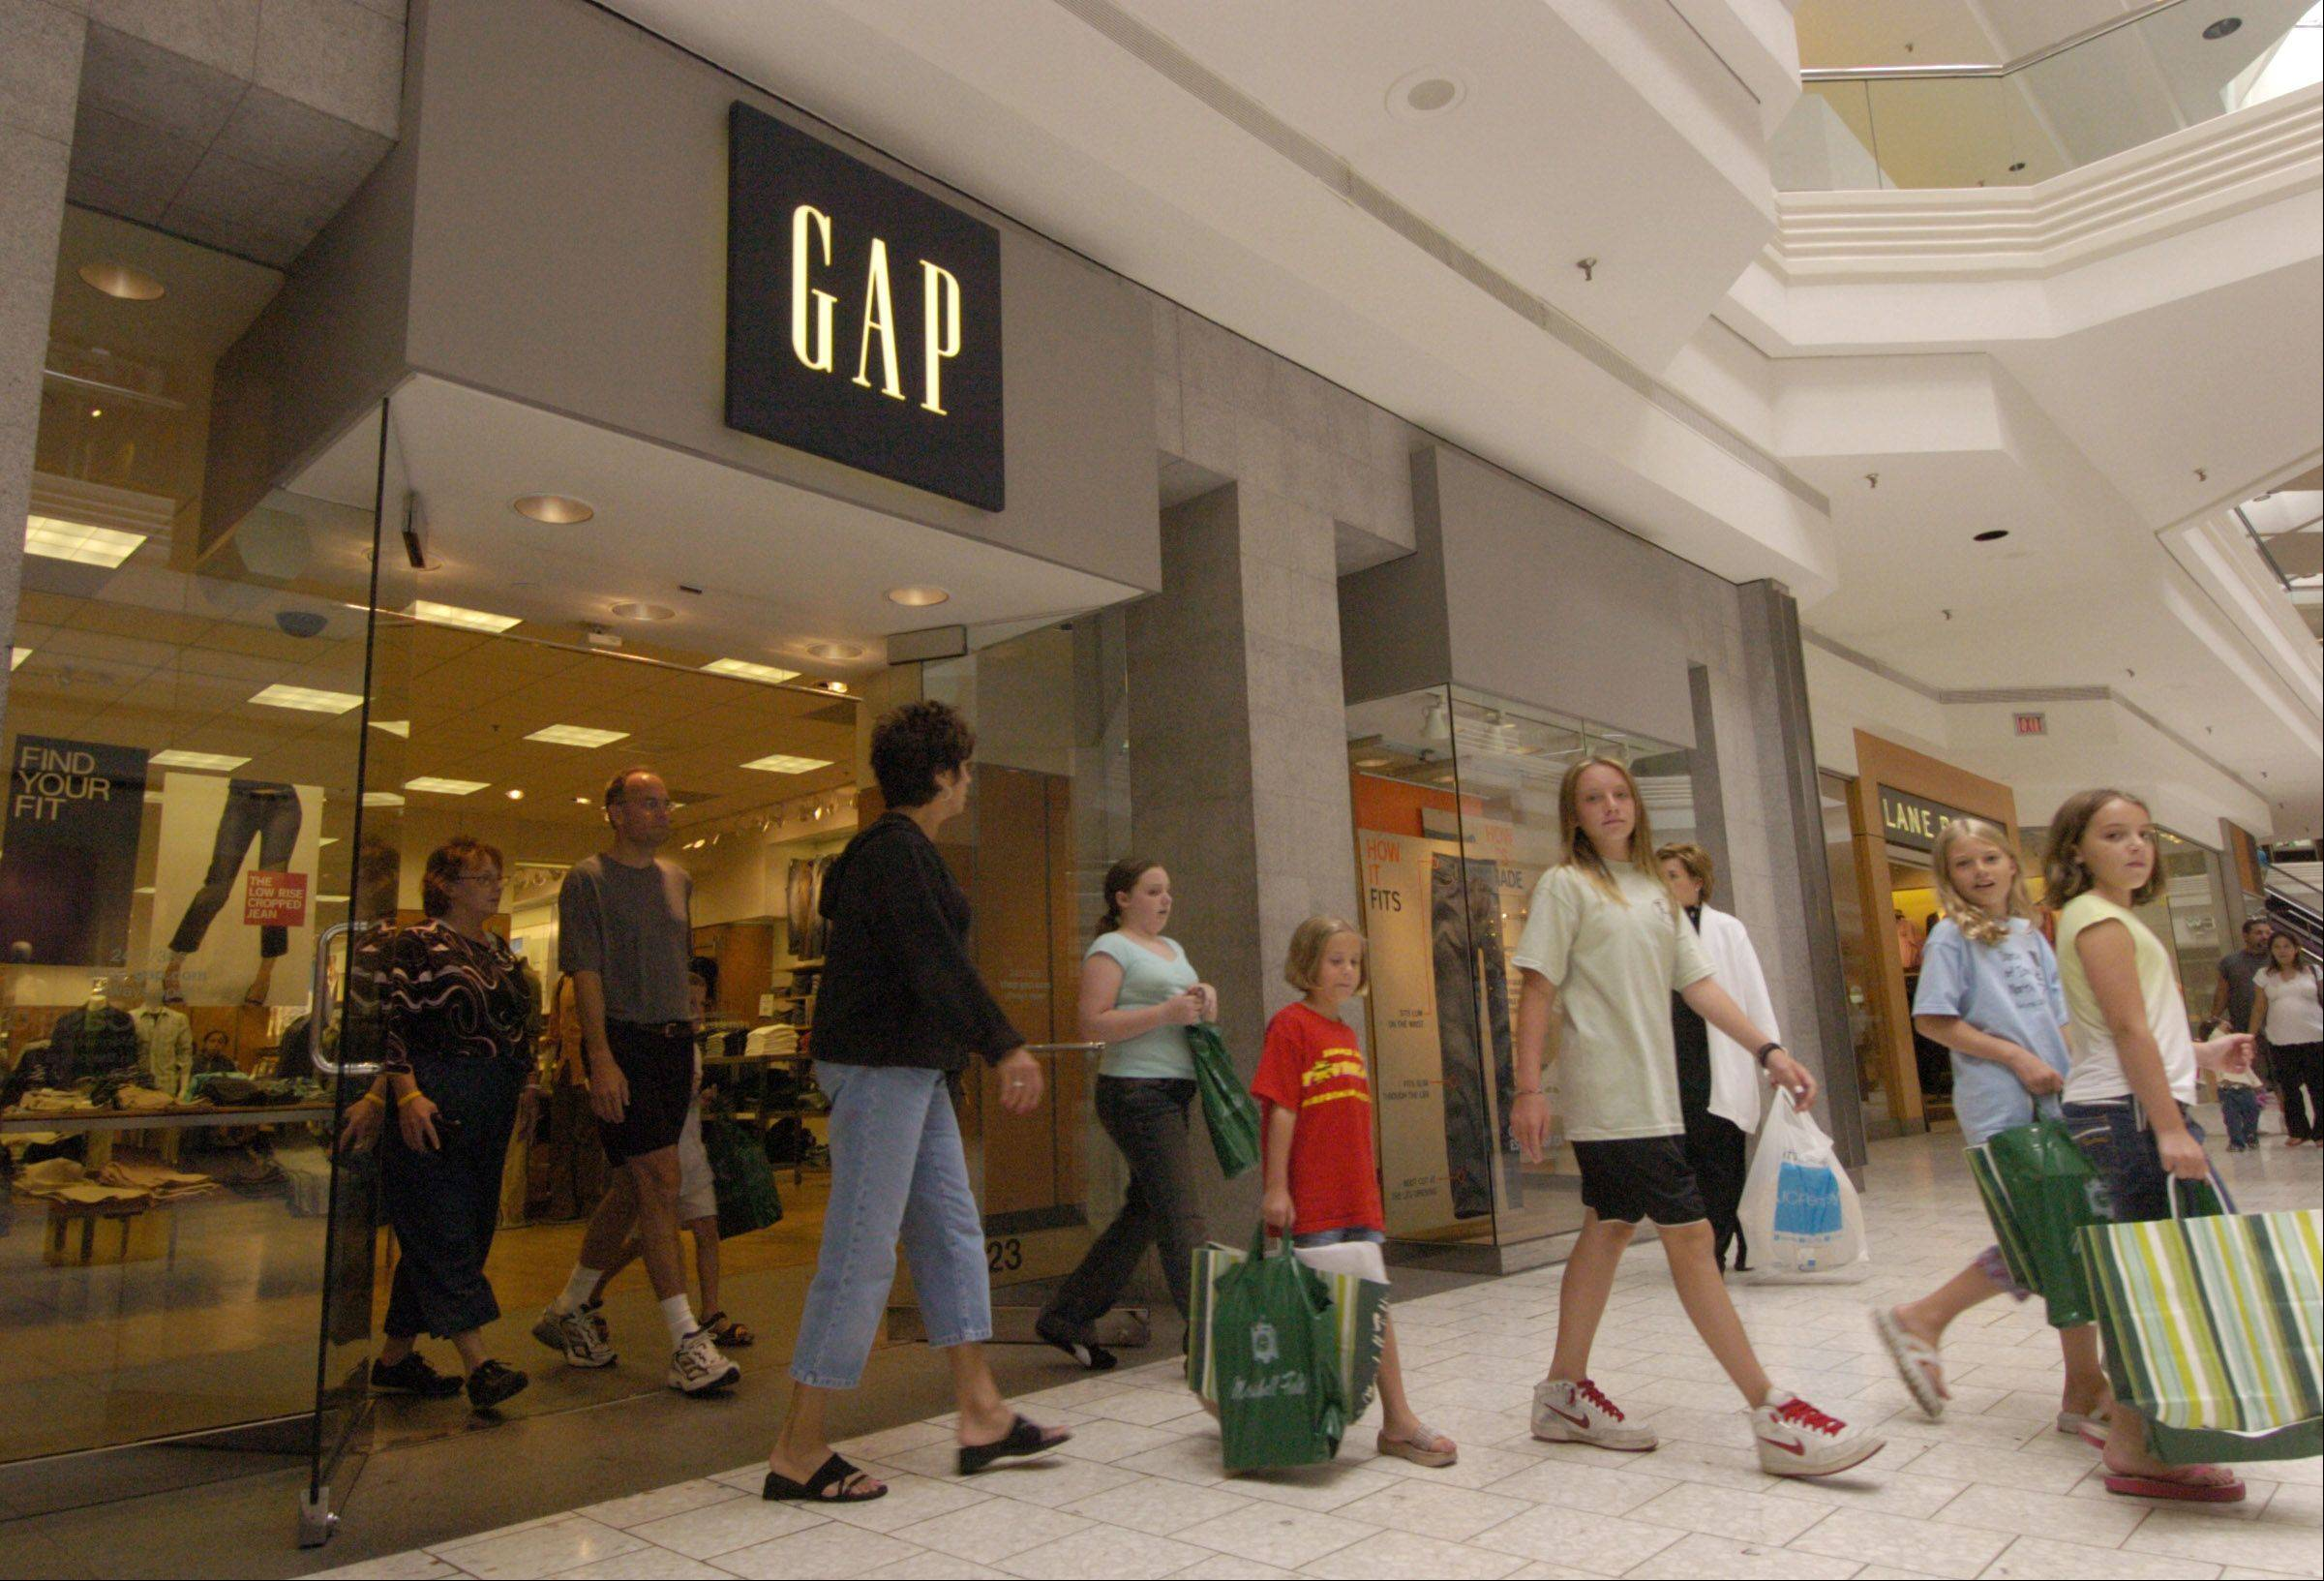 Gap Inc. also operates stores under Old Navy, Banana Republic as well as under Piperlime.